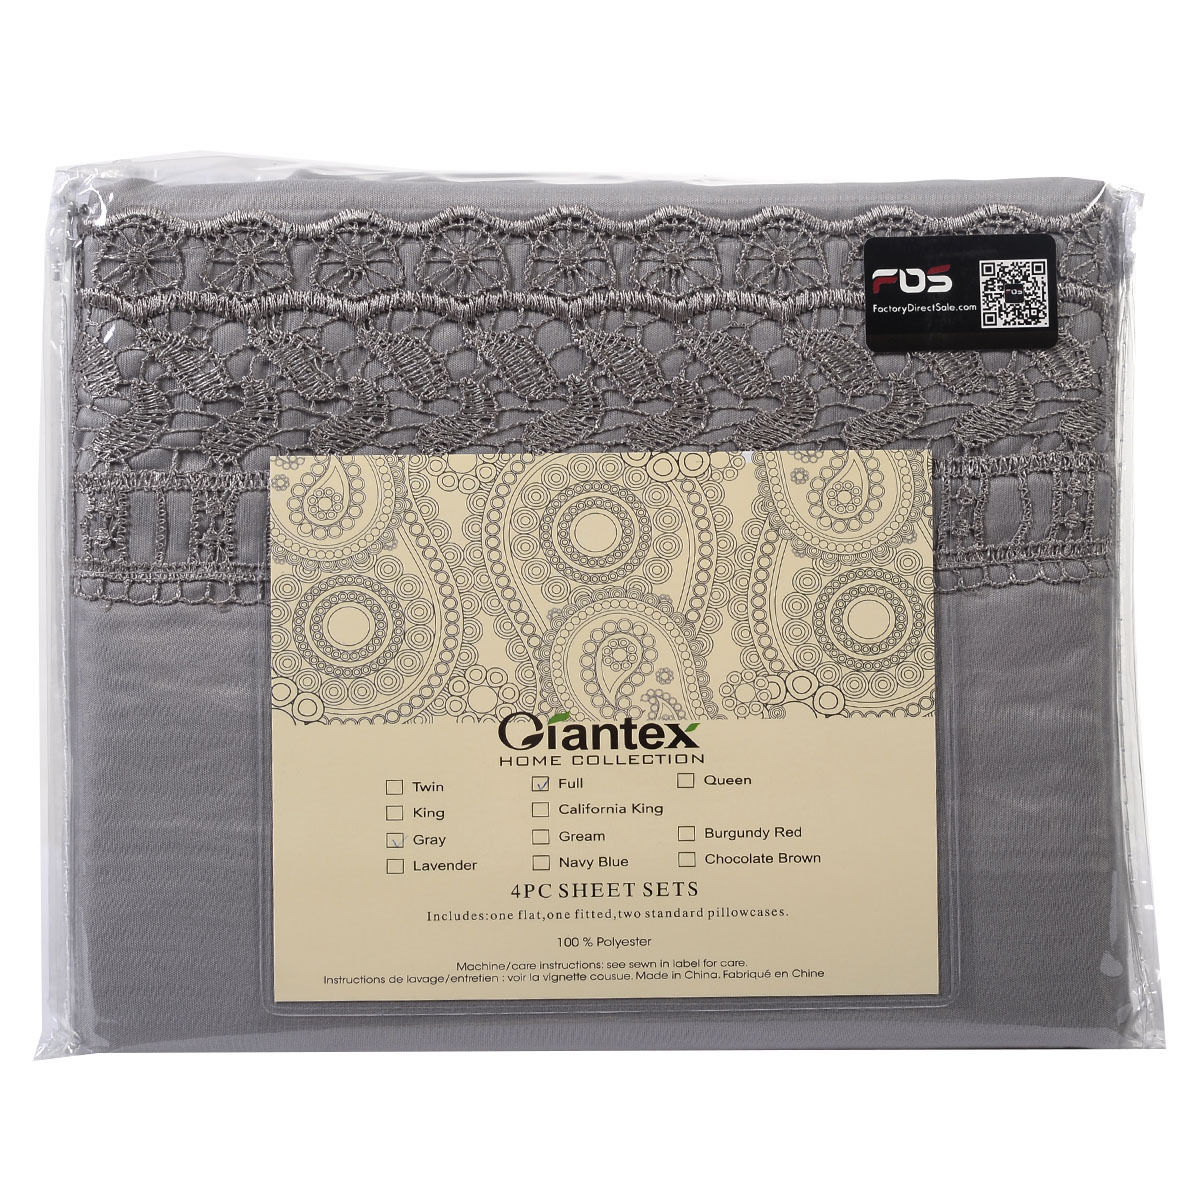 1600-Count-4-Piece-Bed-Sheet-Set-Deep-Pocket-6-Color-5-Size-Chemical-Lace-New thumbnail 21